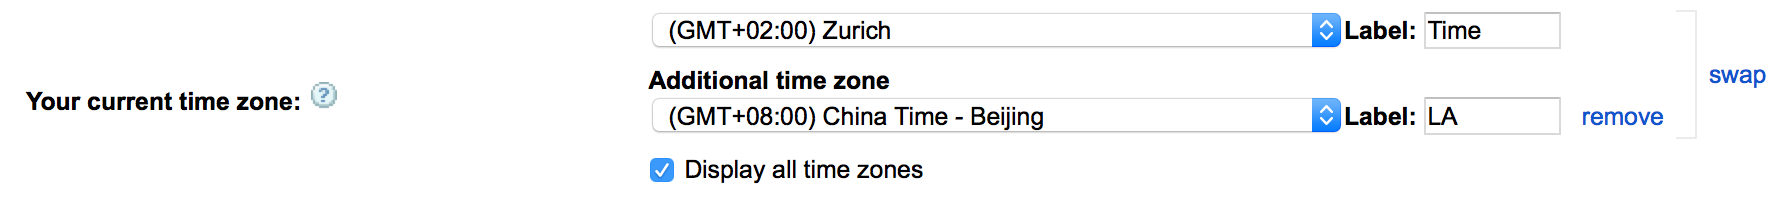 View multiple time zones in Google Calendar